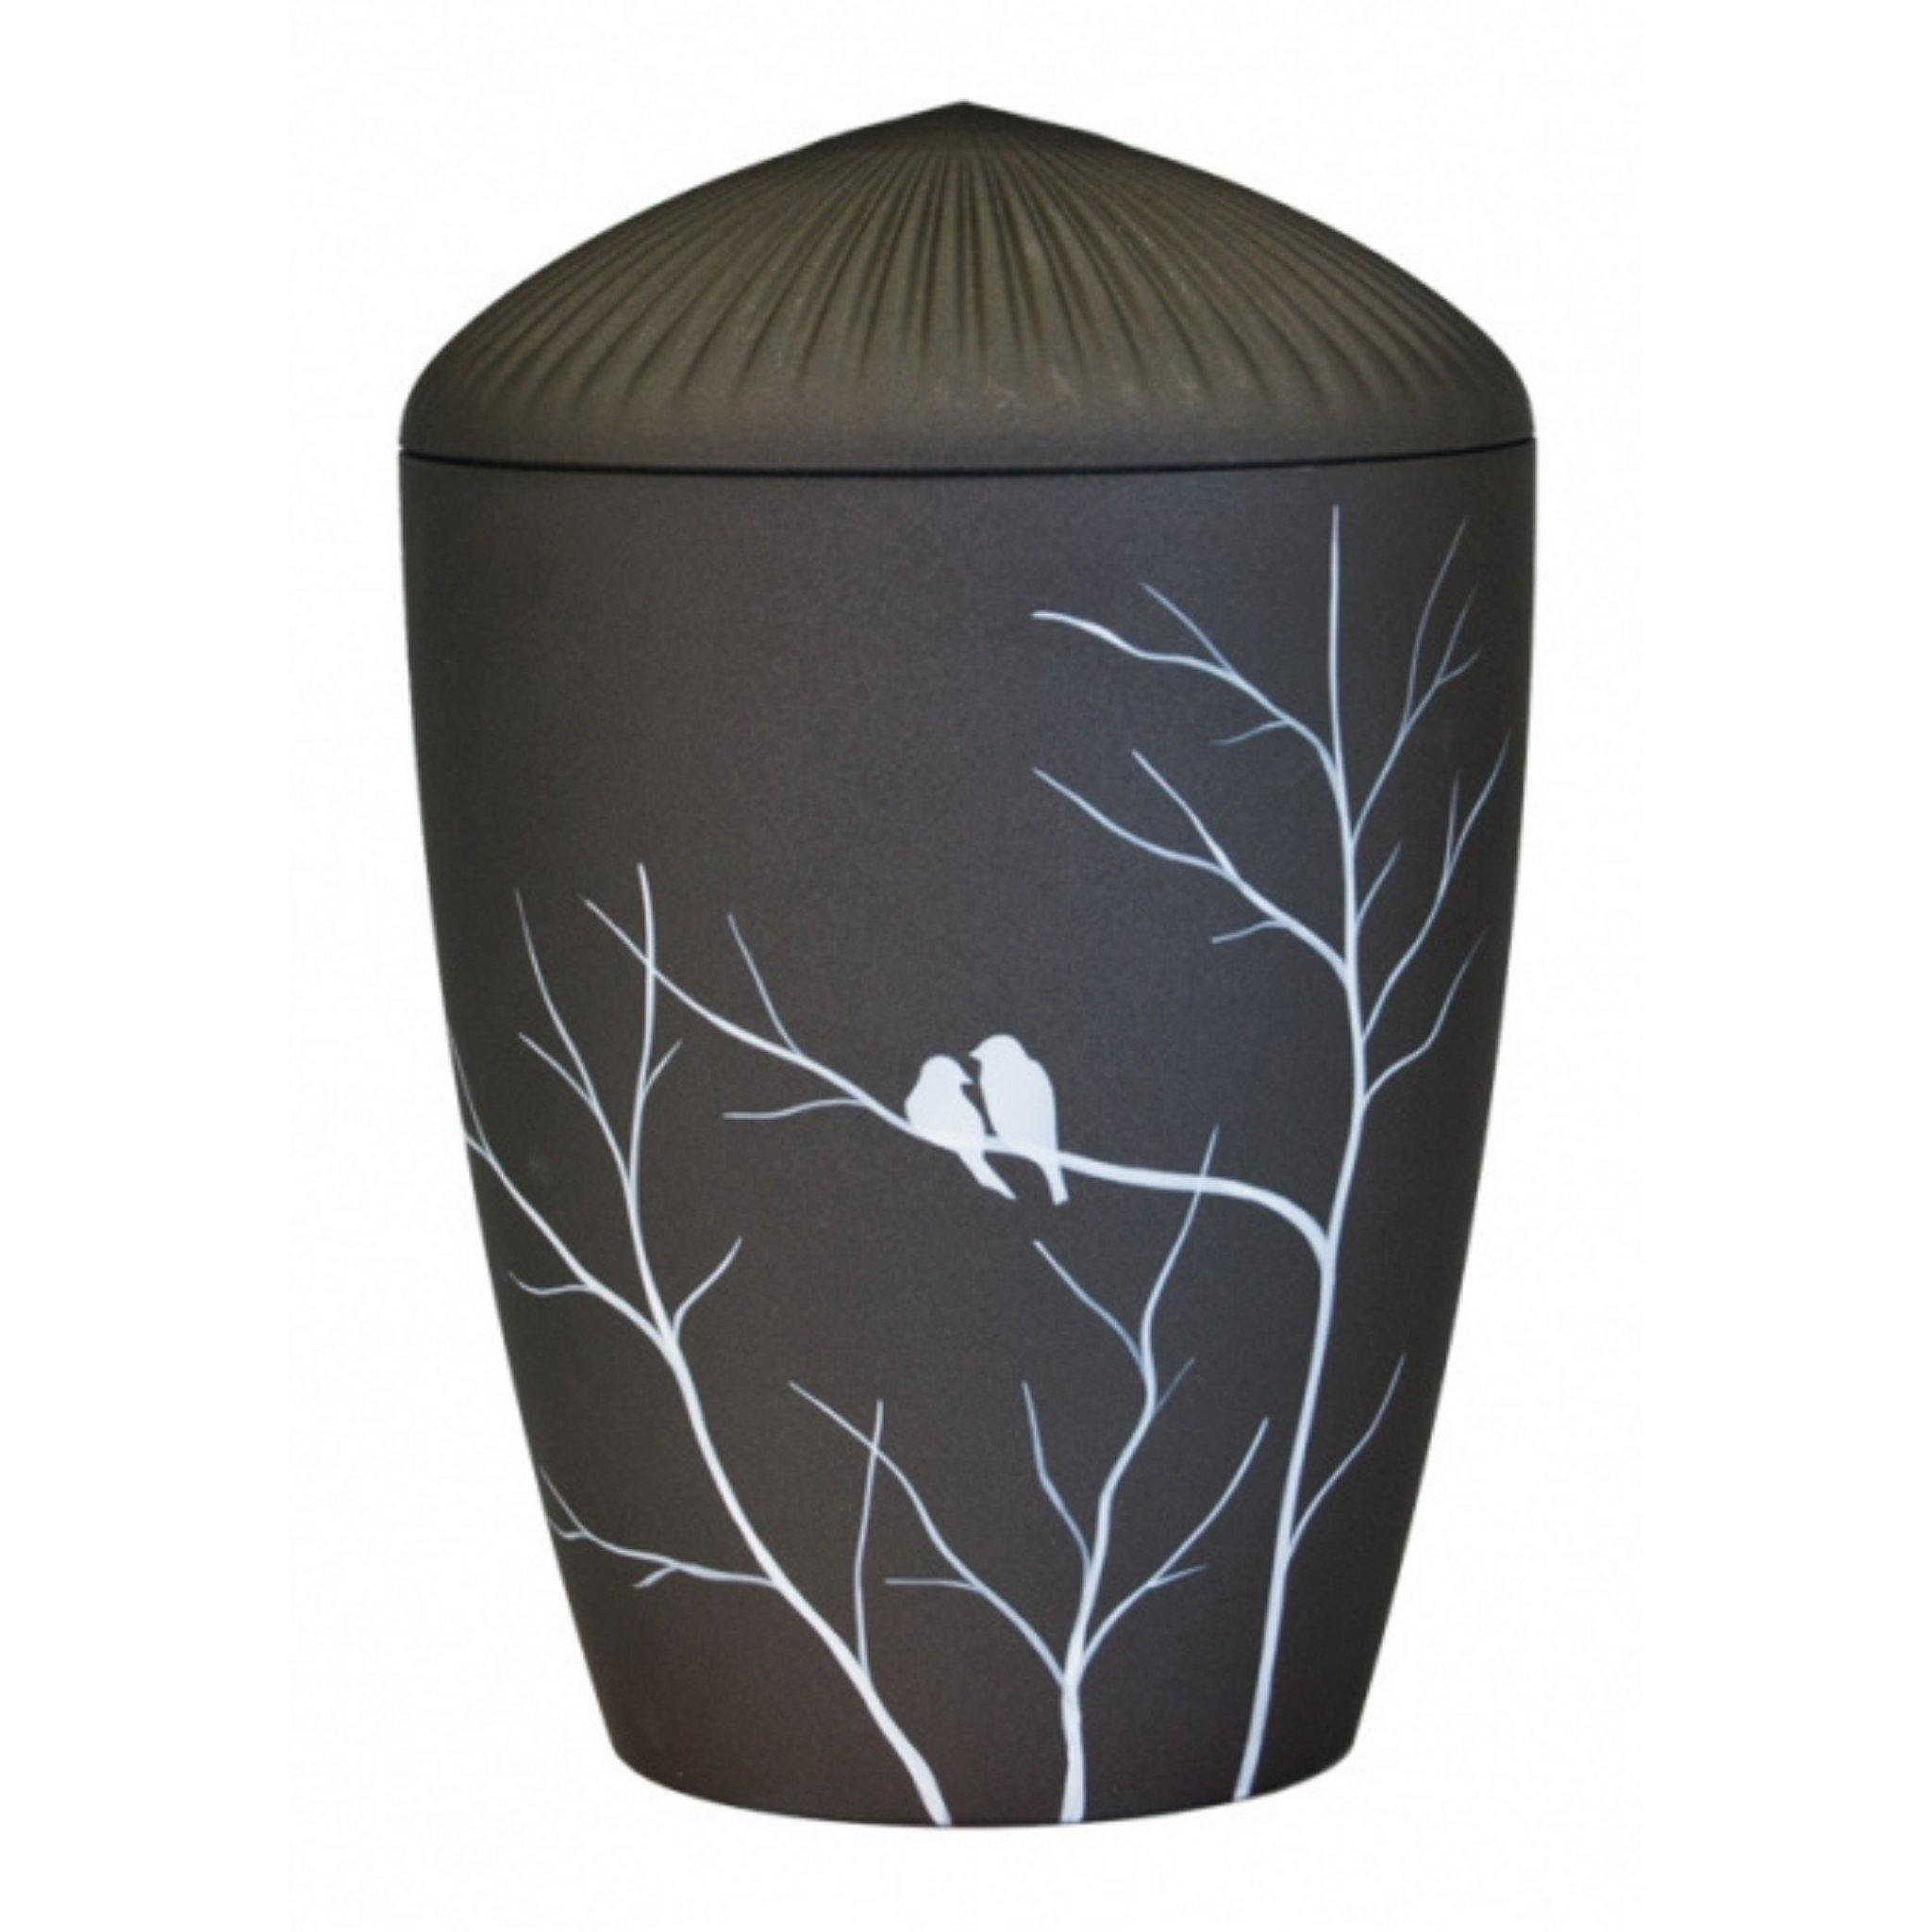 Ferndown Birds in Harmony Bio Cremation Ashes Urn - Urns UK